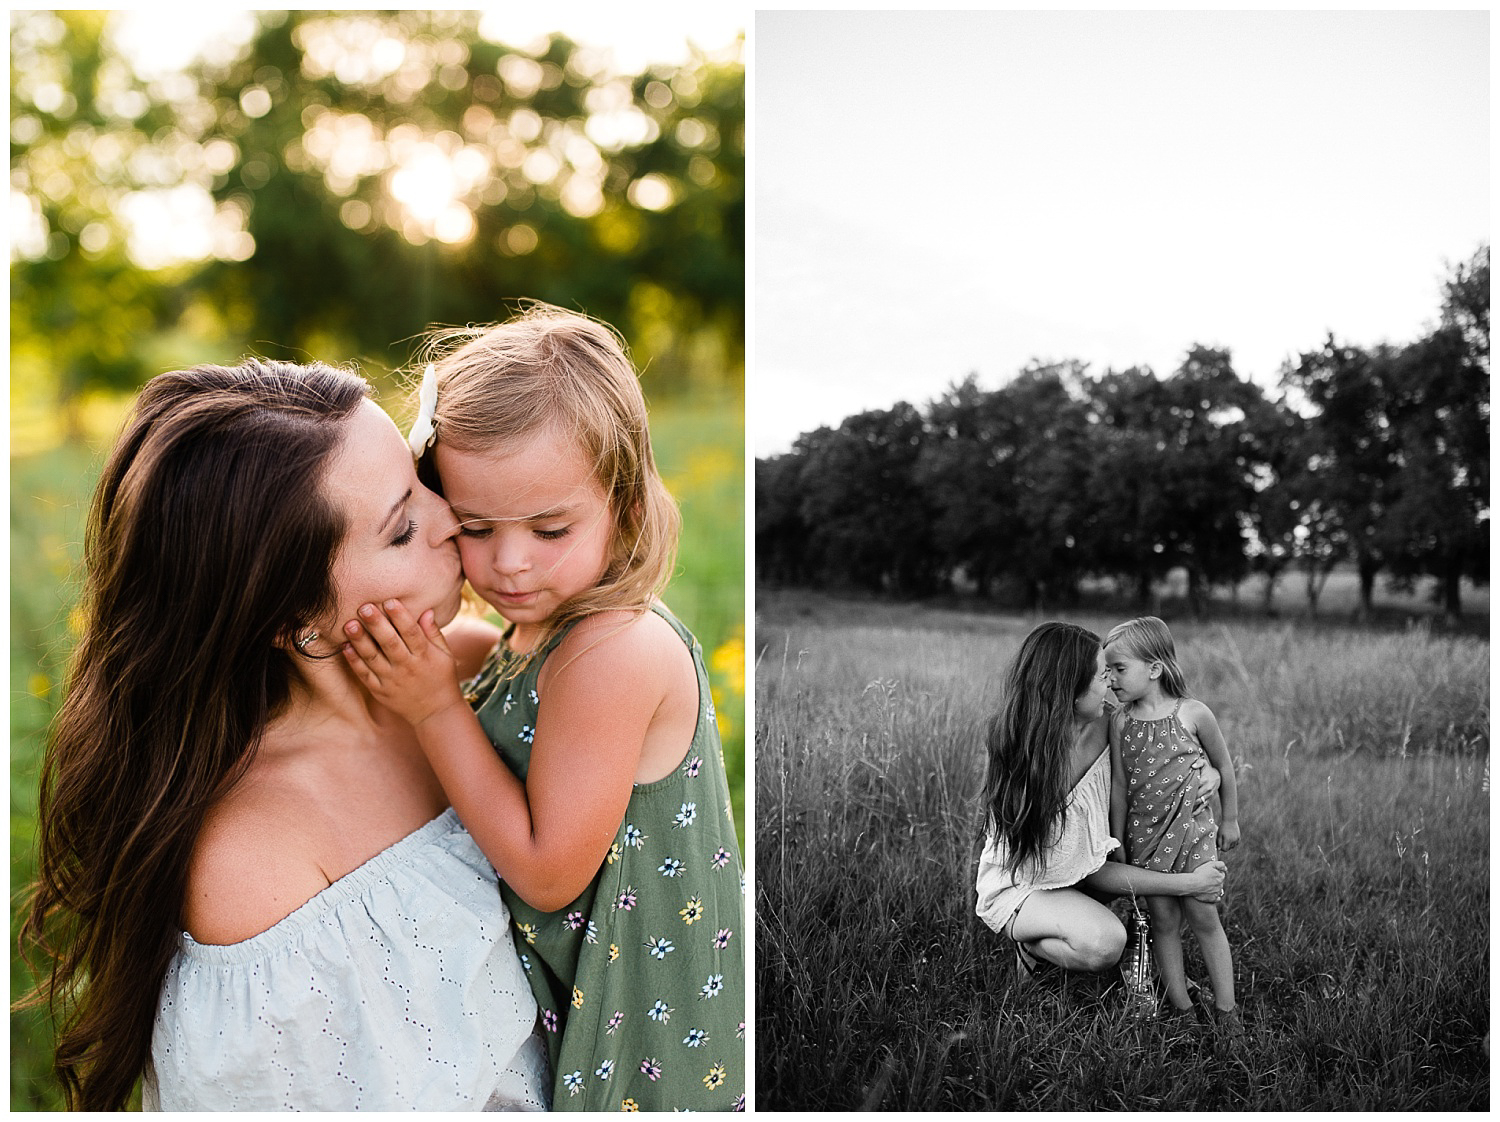 Rebecca Clair Photography – Kansas City family, maternity